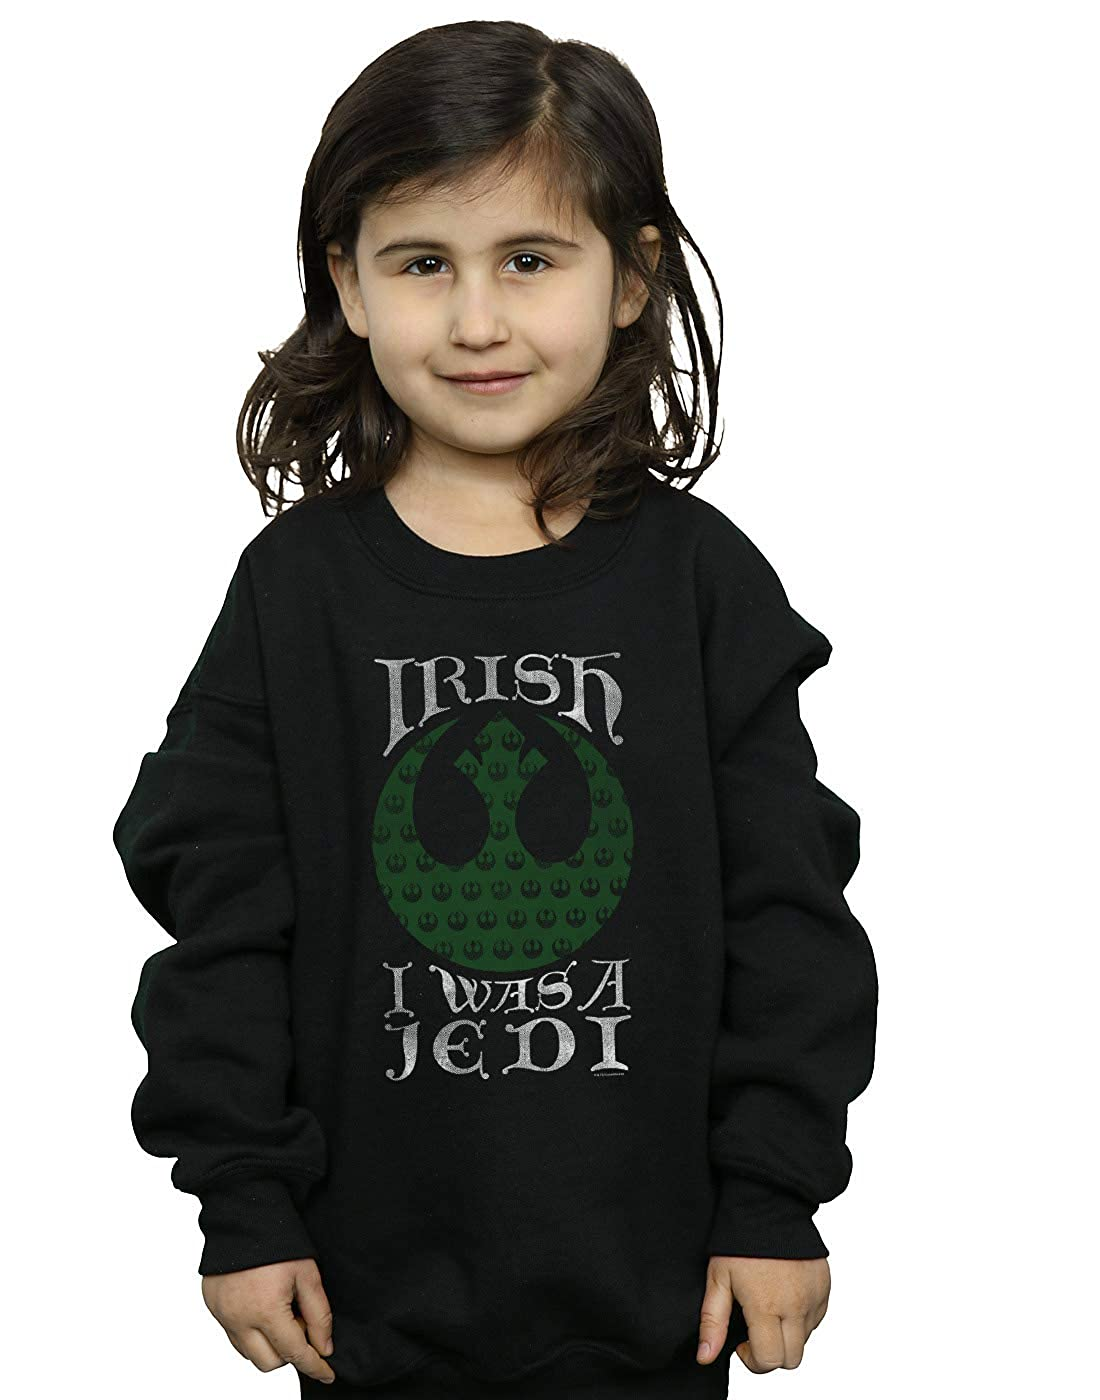 Star Wars Girls Irish I was A Jedi Sweatshirt